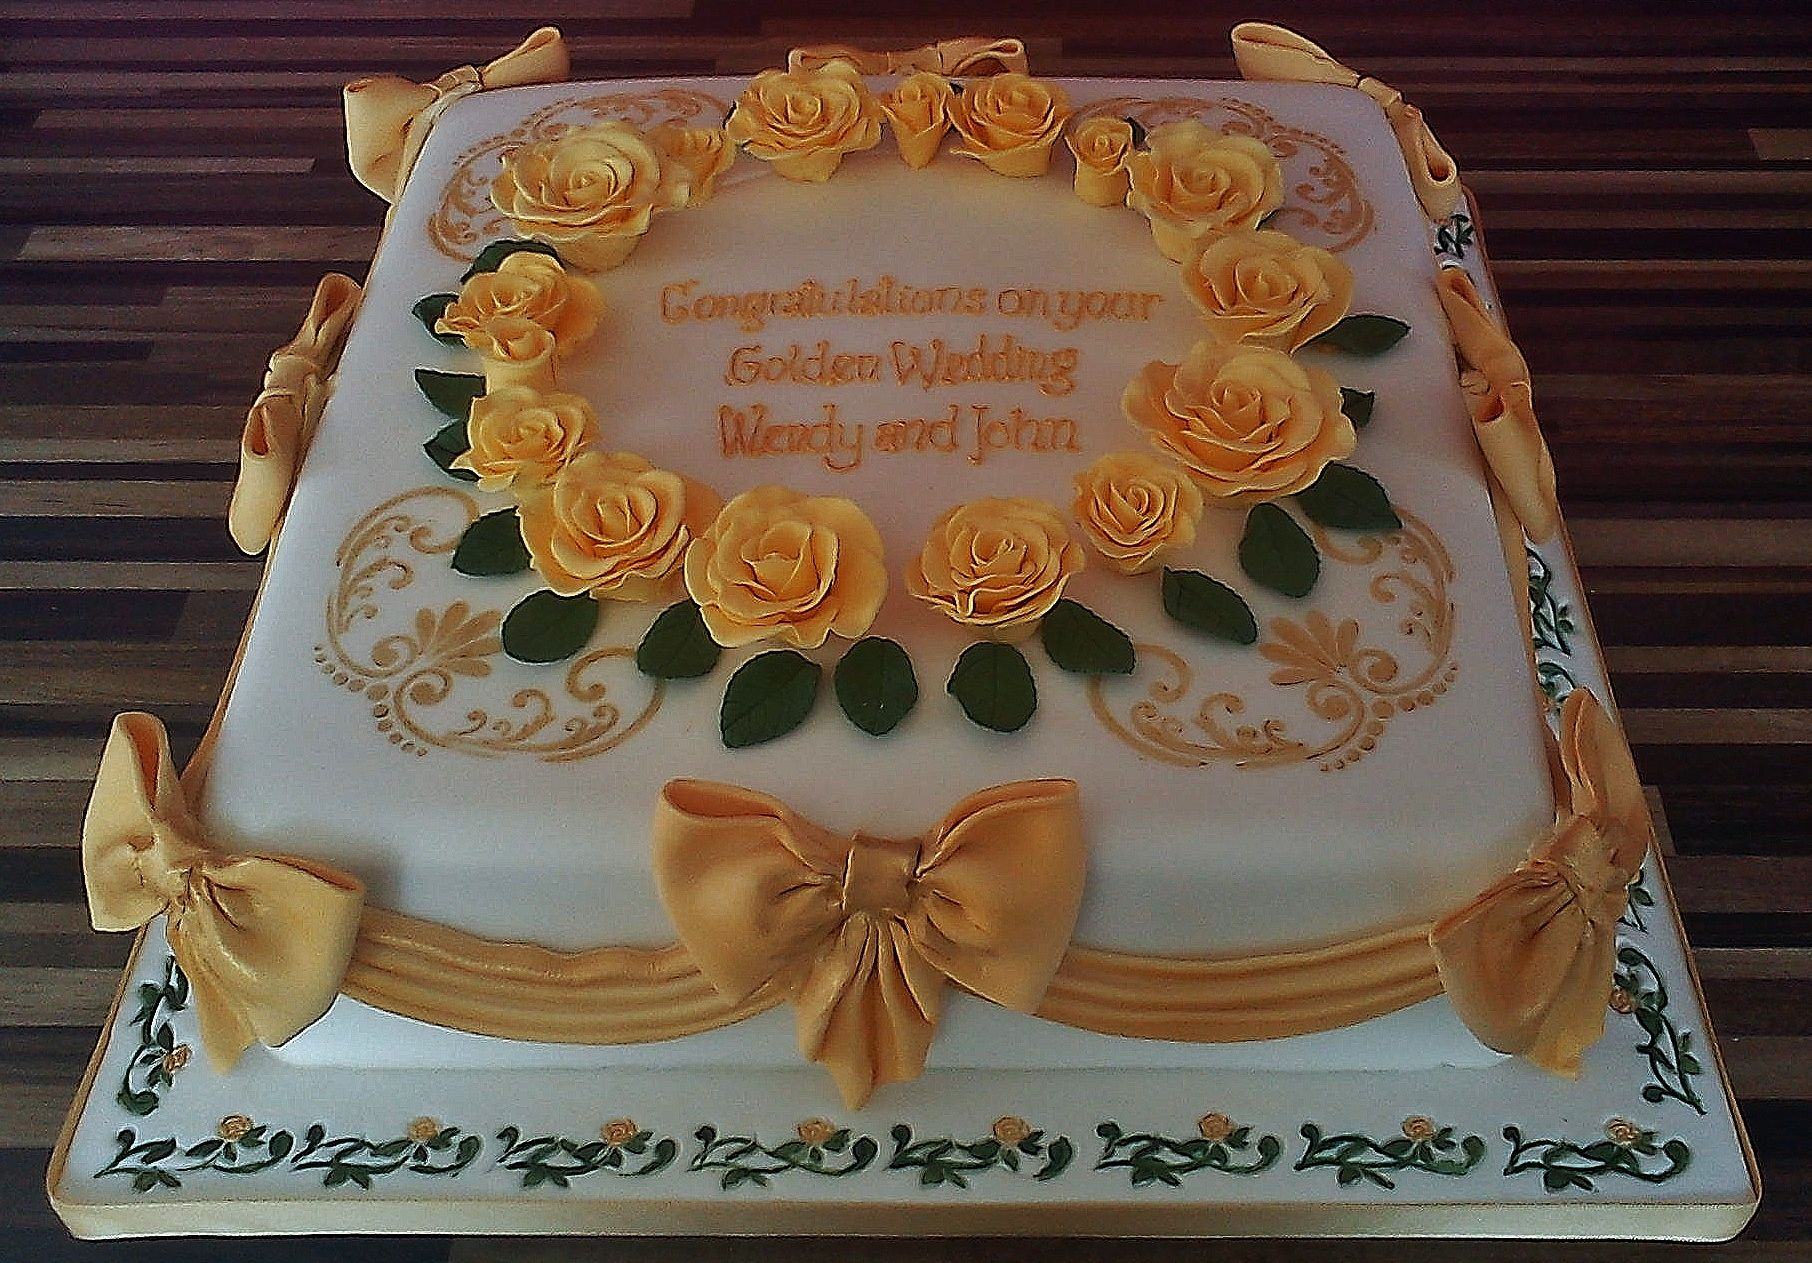 A very traditional and decorative design anniversary cakes